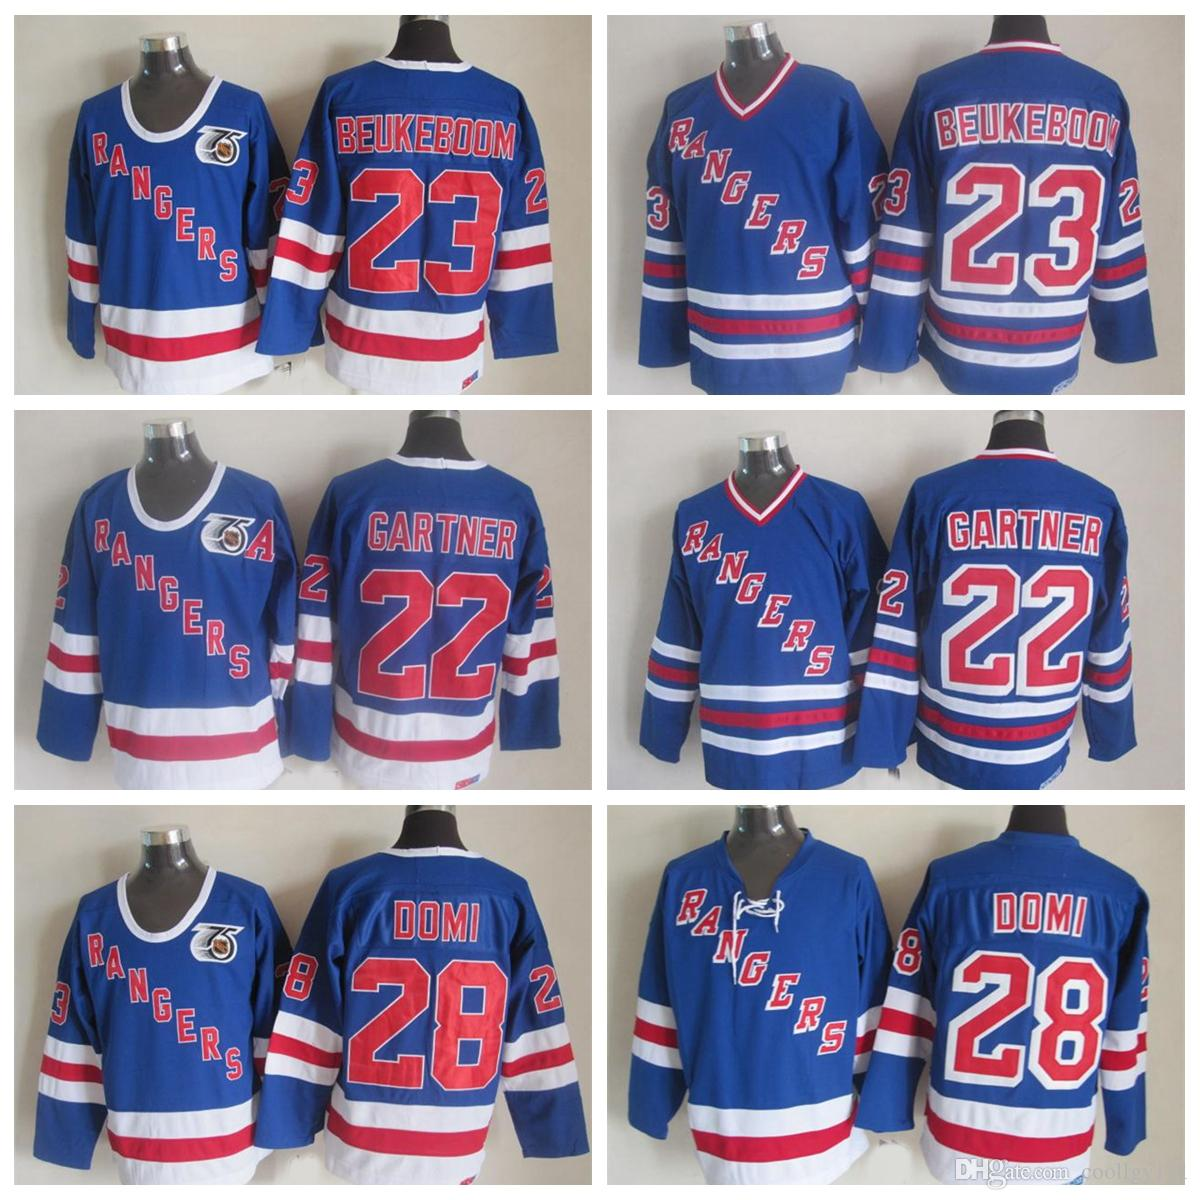 75f3fe140 New York Rangers Hockey Jerseys Throwback 28 Tie Domi 22 Mike Gartner 23  Jeff Beukeboom Royal V Neck 91-92 75th Anniversary Blue Ice On Sale New  York .